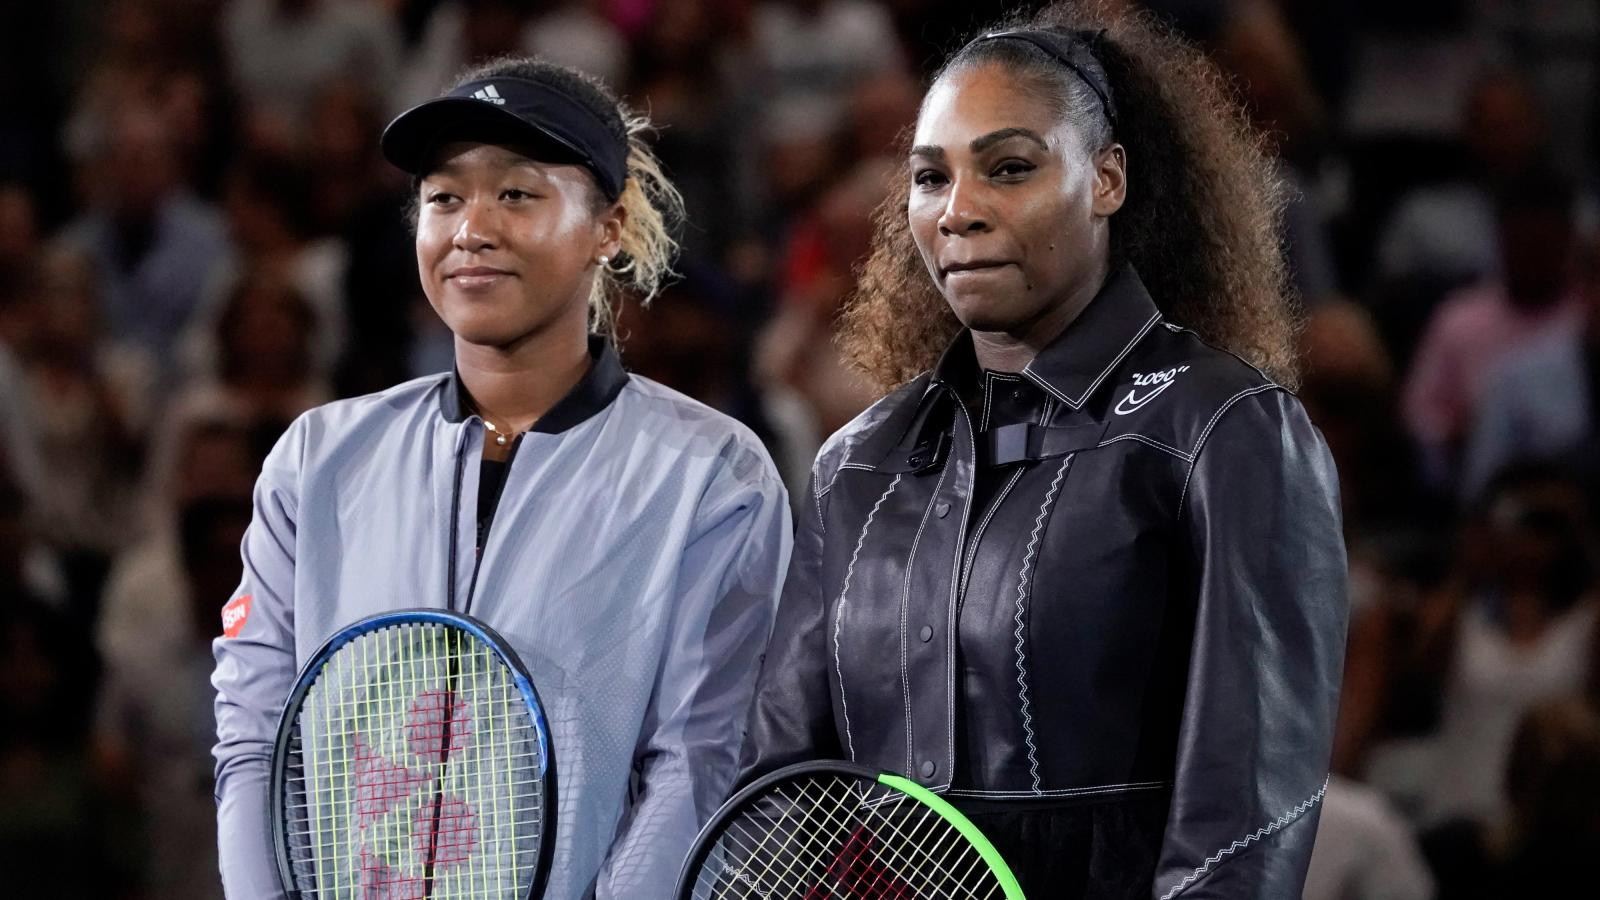 shan-george-engaged-cardi-b-death-threats-serena-williams-naomi-osaka-rematch-latest-news-global-world-stories-thursday-september-2020-style-rave